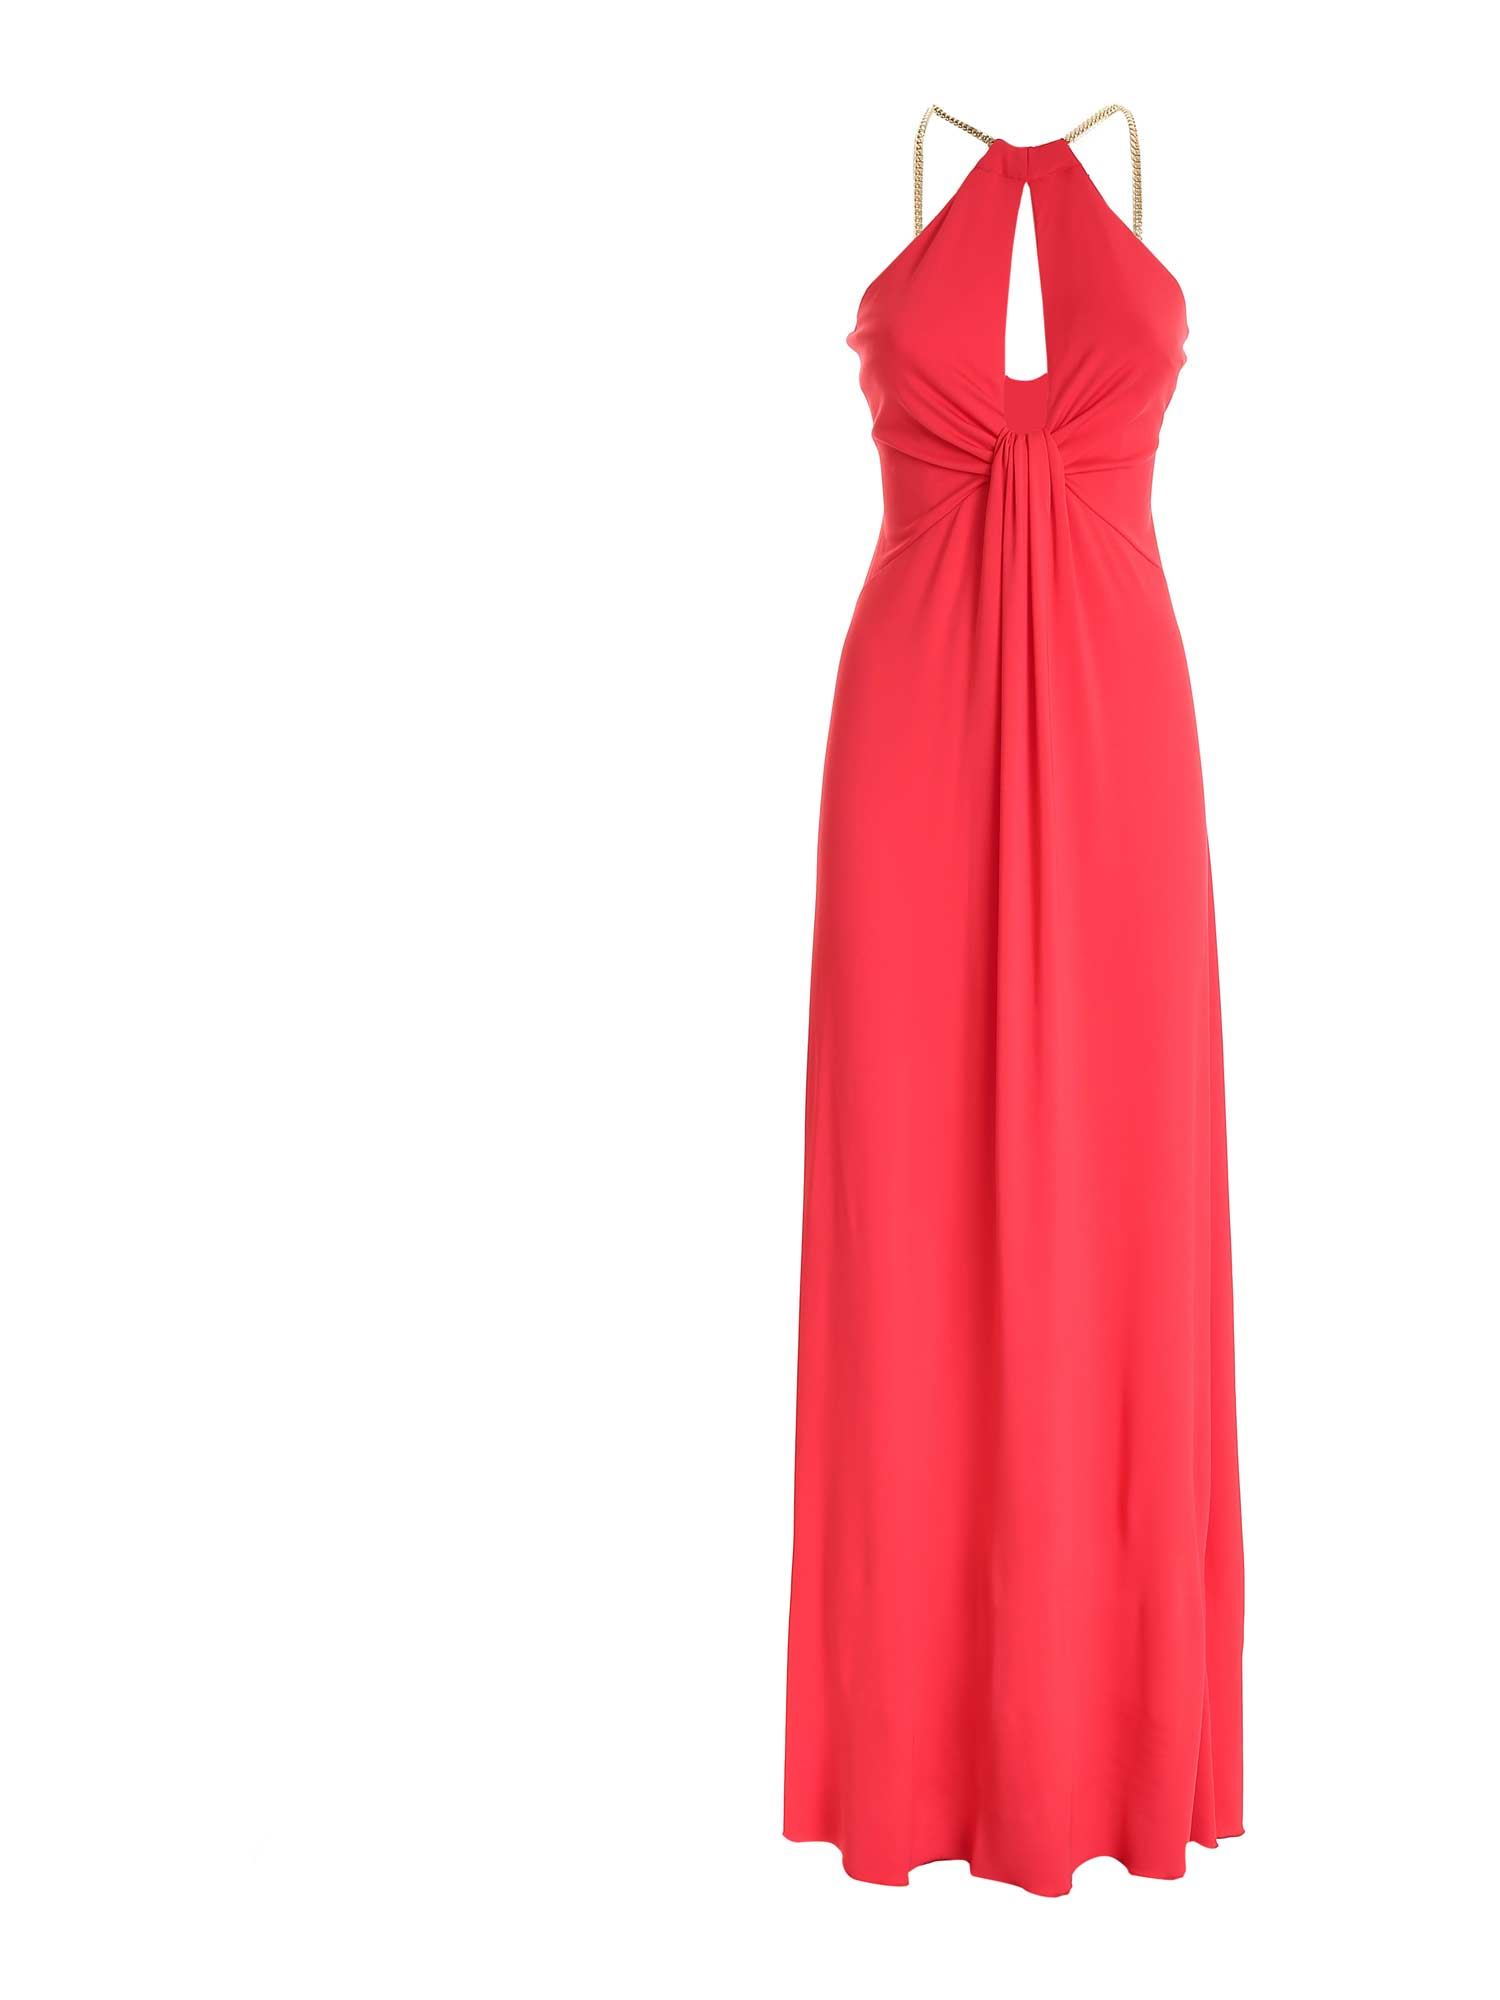 Blumarine Linings CHAIN DETAIL DRESS IN CORAL RED